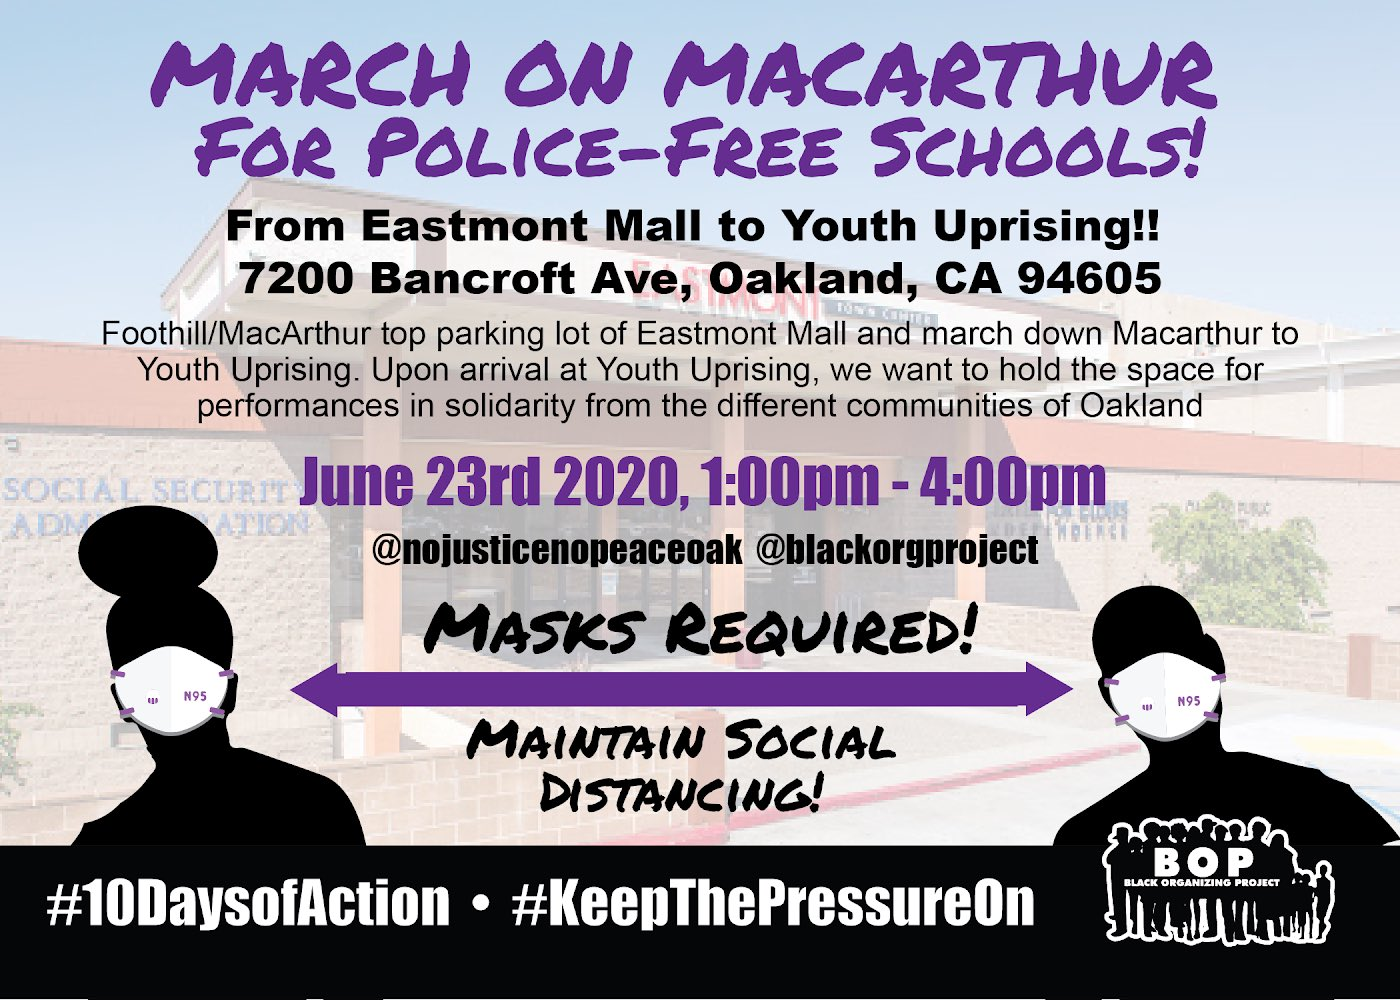 March on MacArthur for Police-Free Schools @ Eastmont Mall